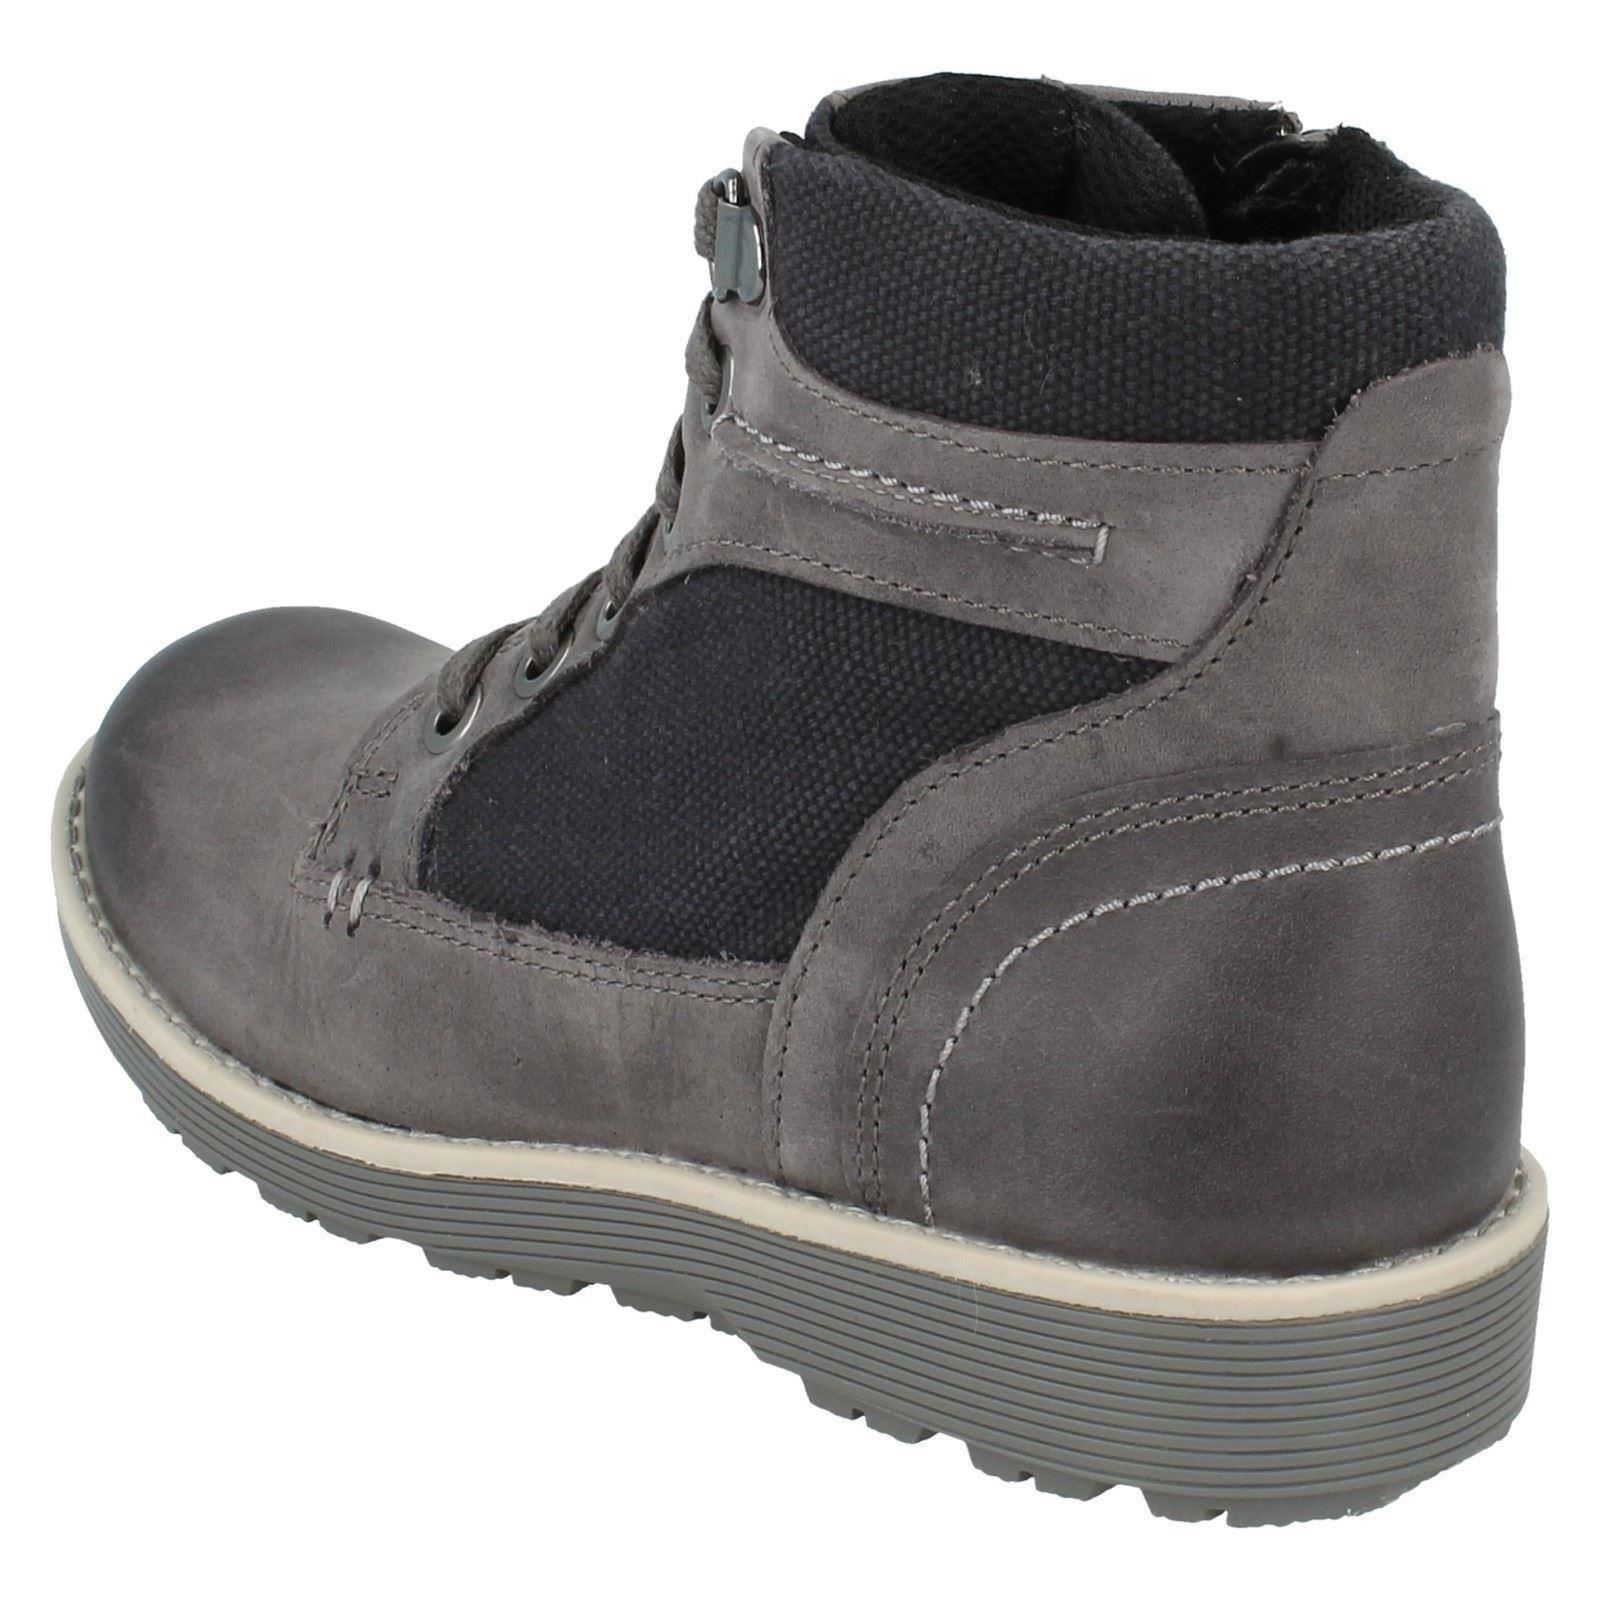 Boys Clarks Ankle Boots Style - Day Music